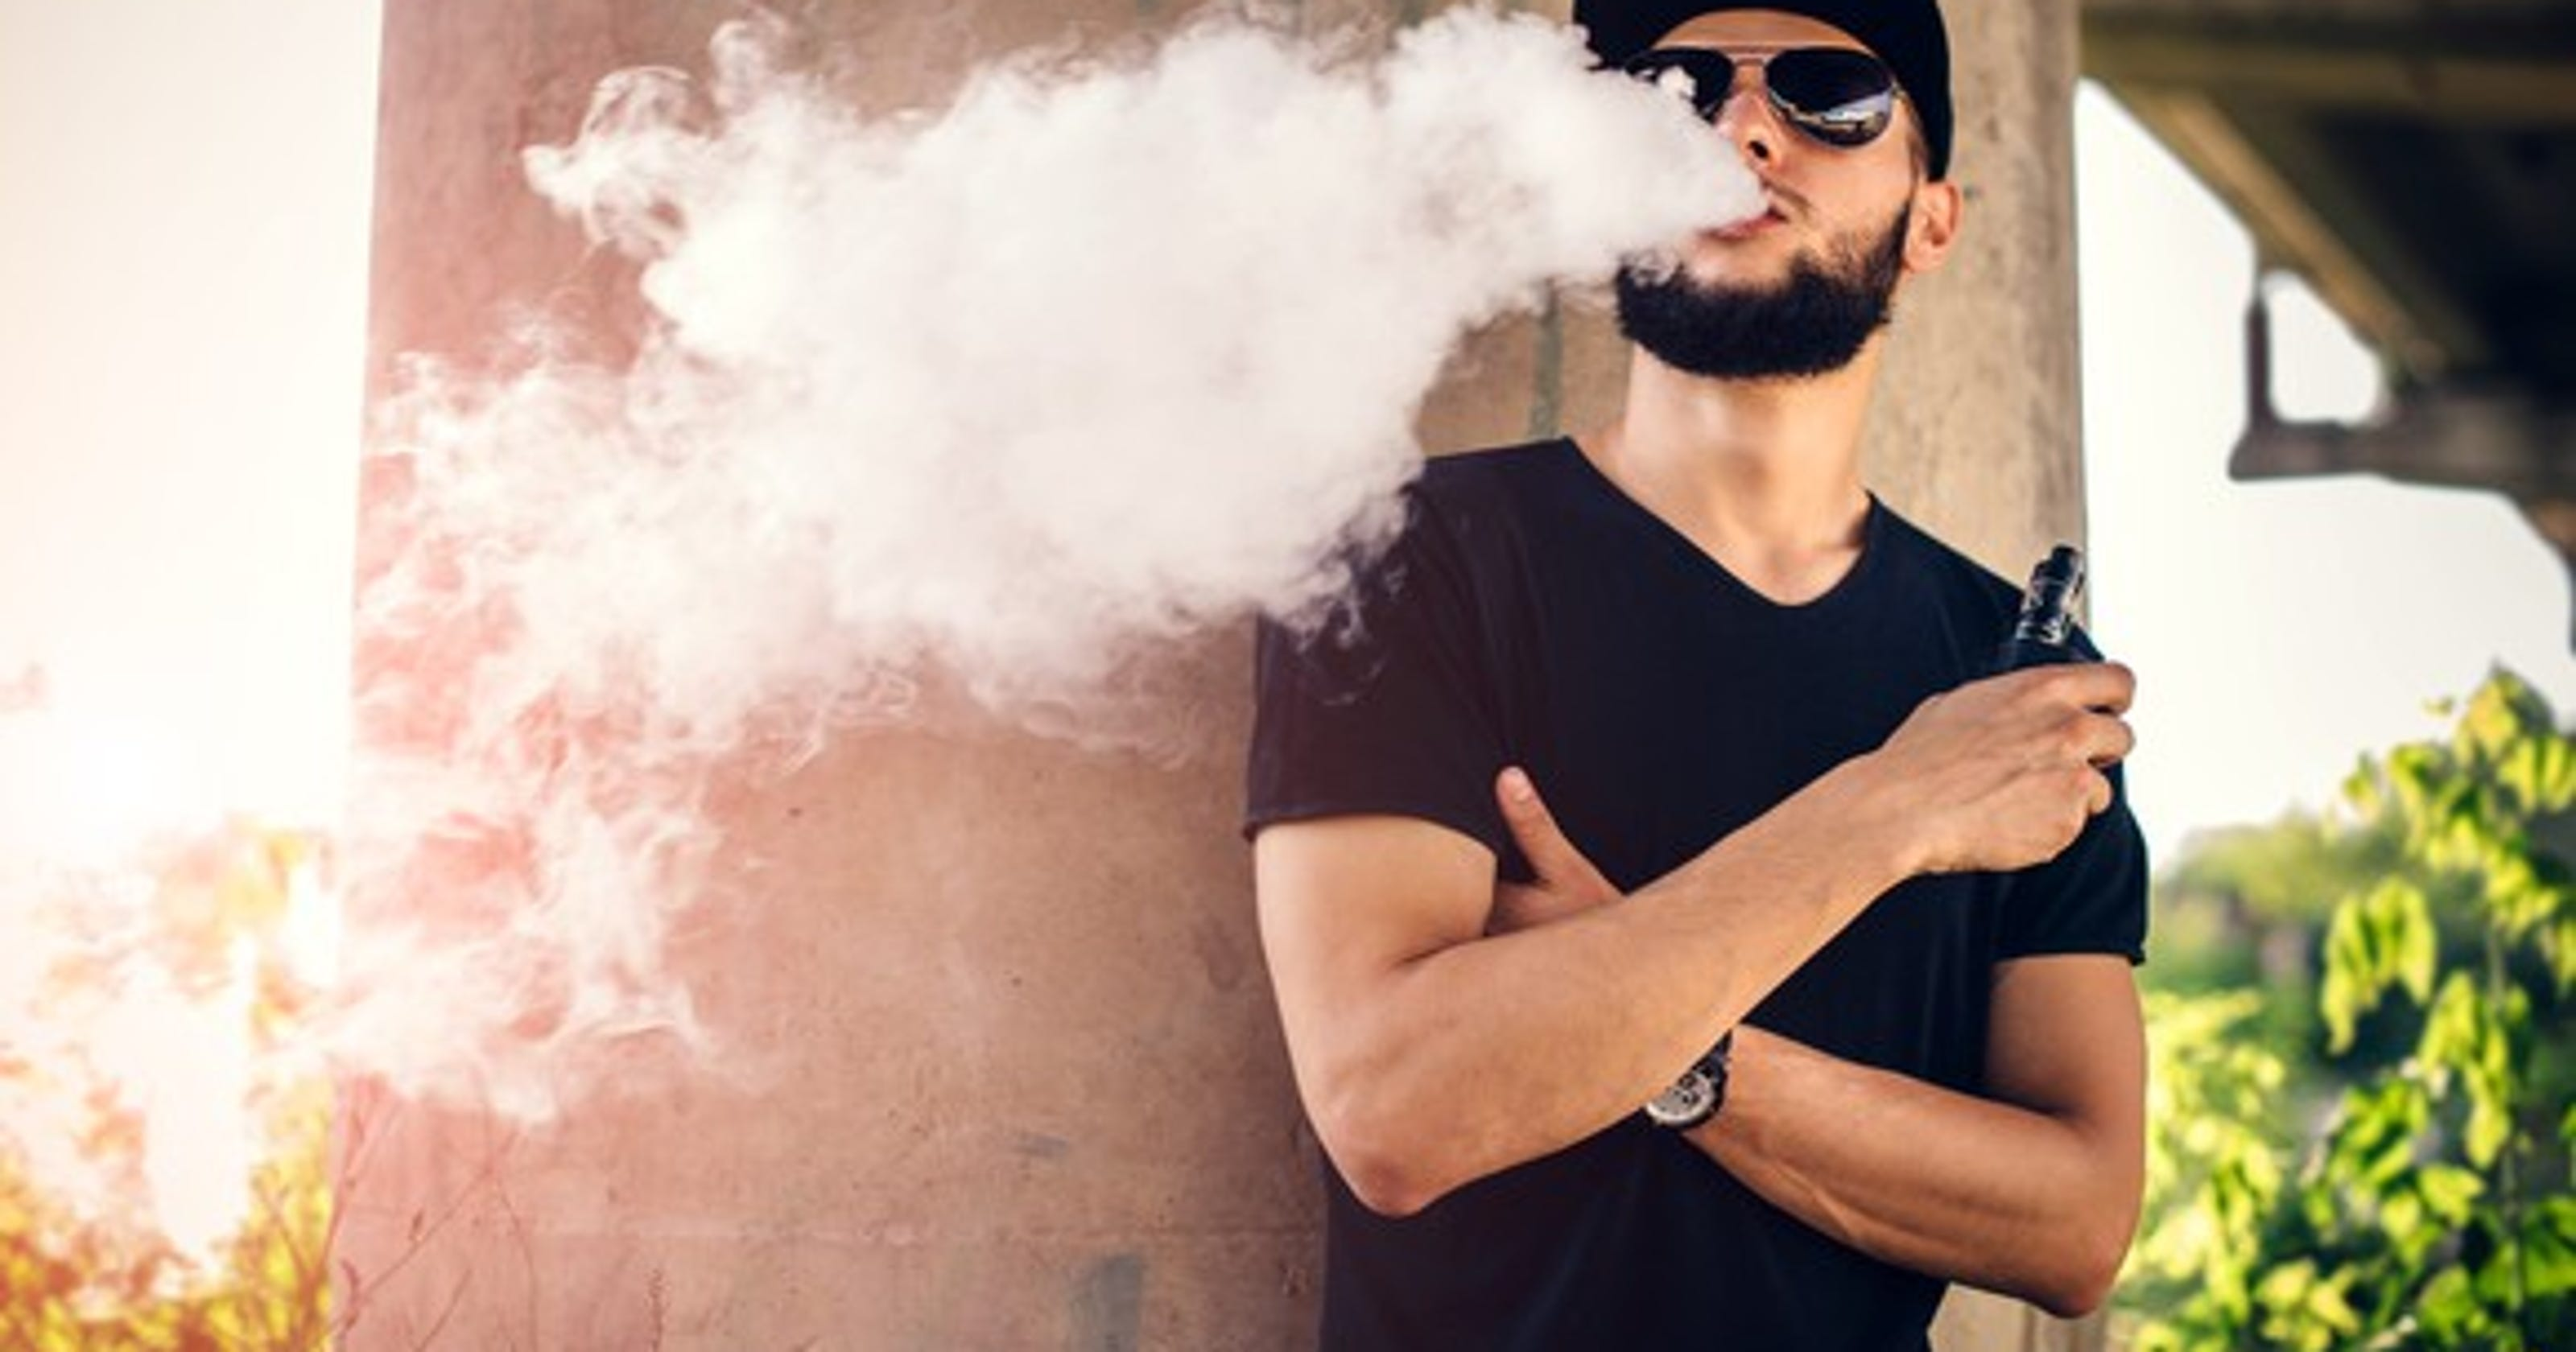 Quit vaping: E-cigarettes spur nicotine withdrawal